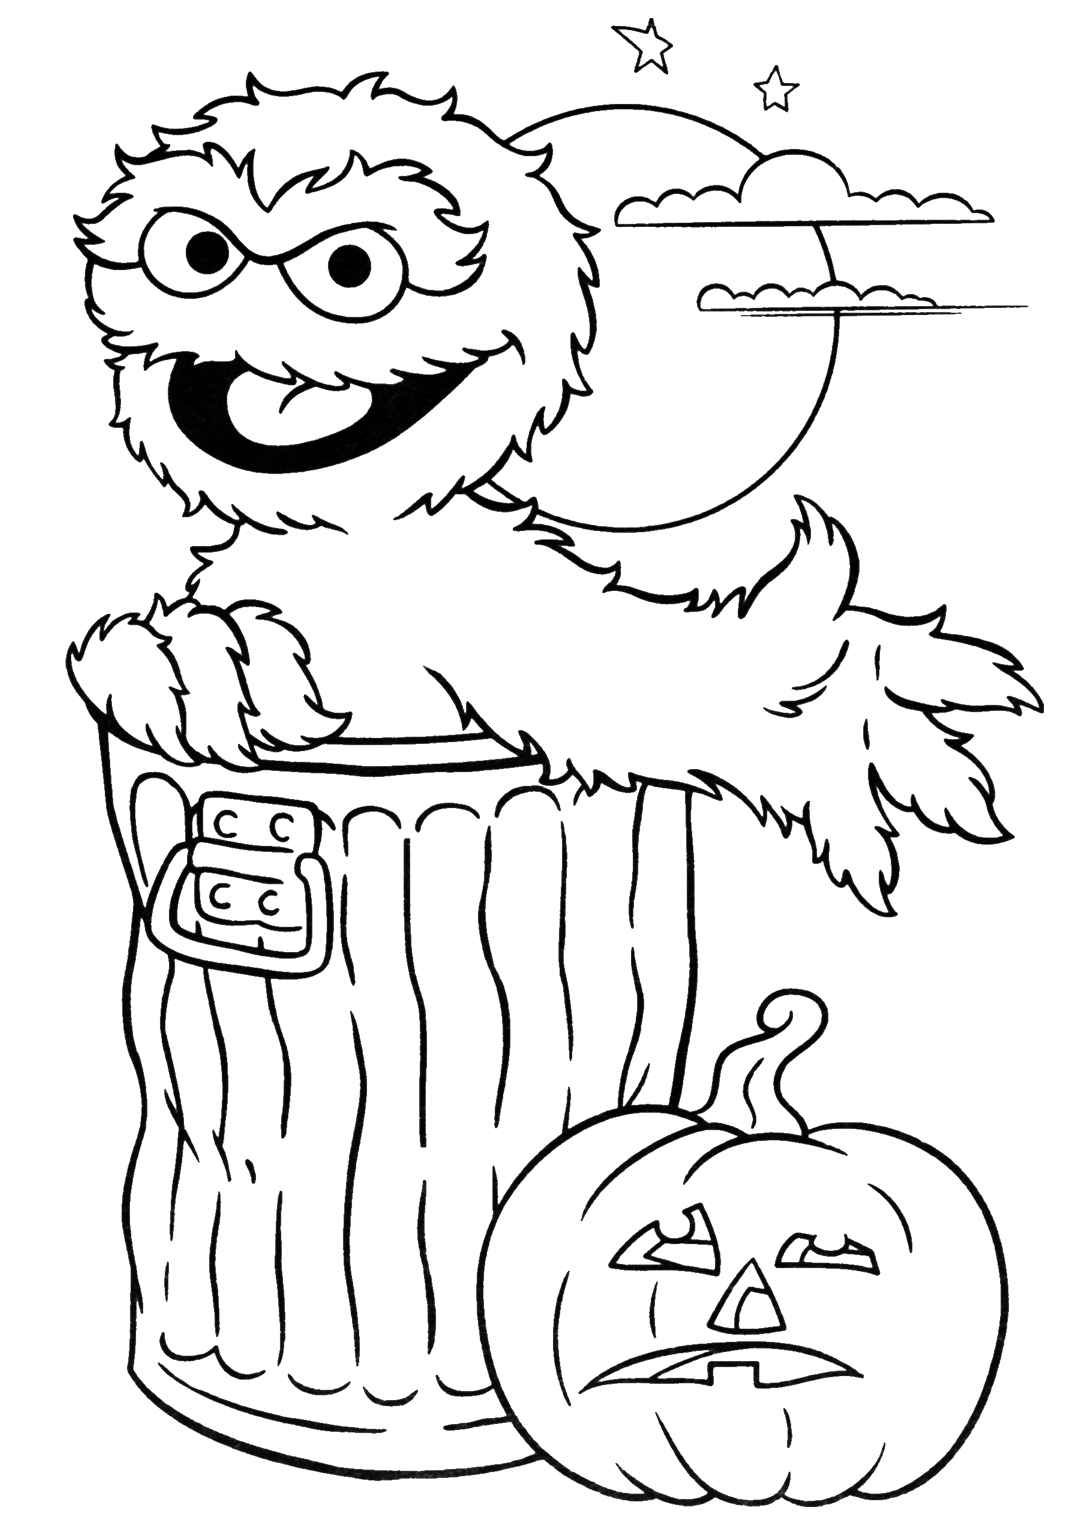 printable coloring pages halloween | Halloween Printable Coloring Pages - Minnesota Miranda